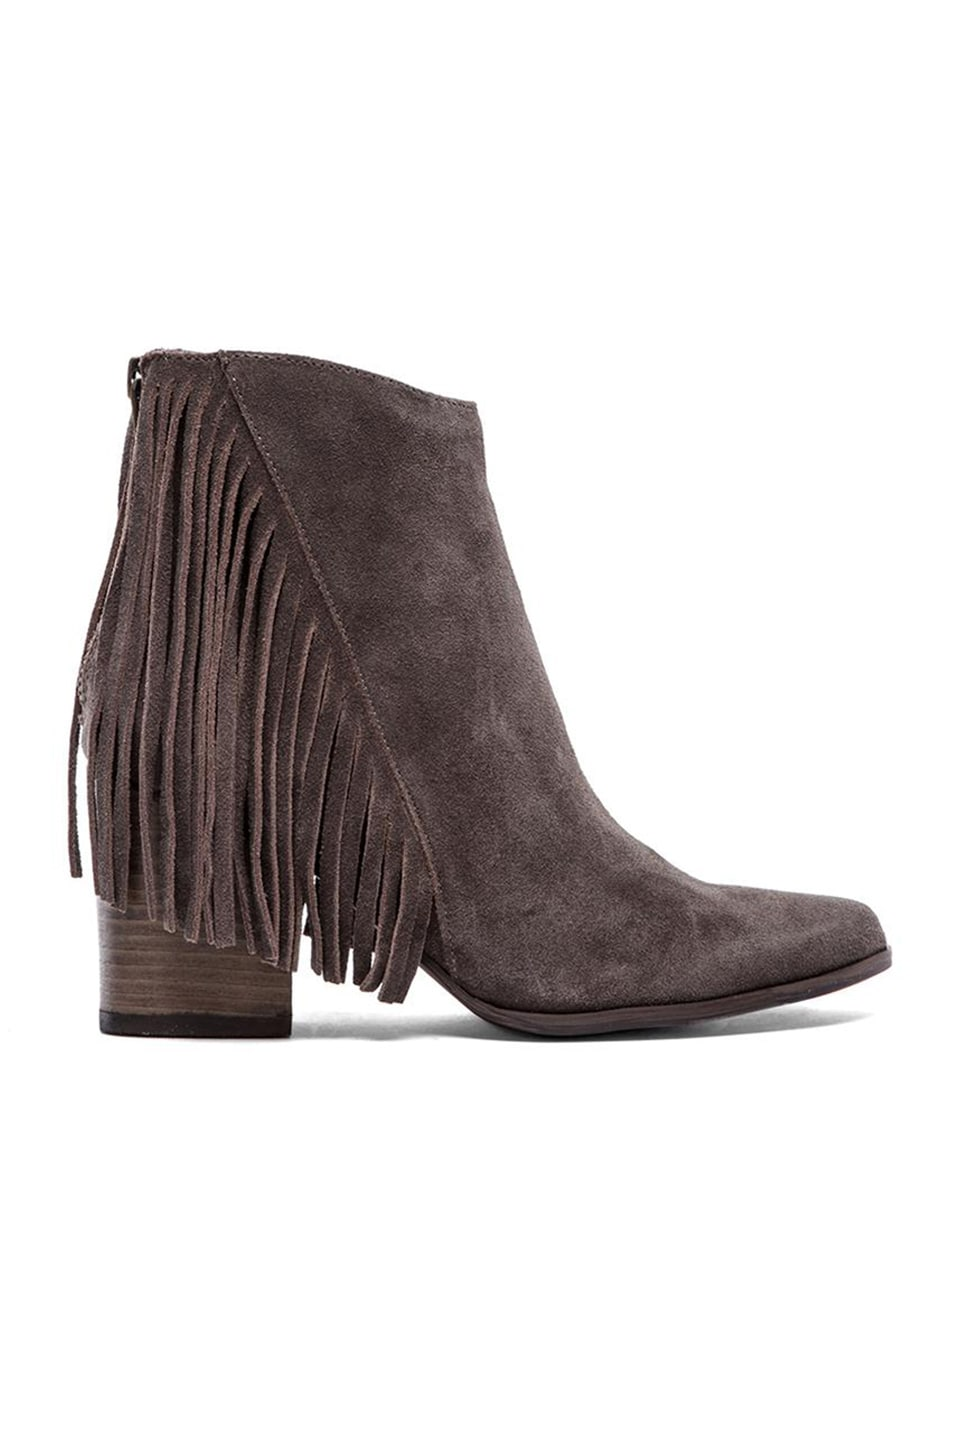 Steve Madden Countryy Bootie in Taupe Suede